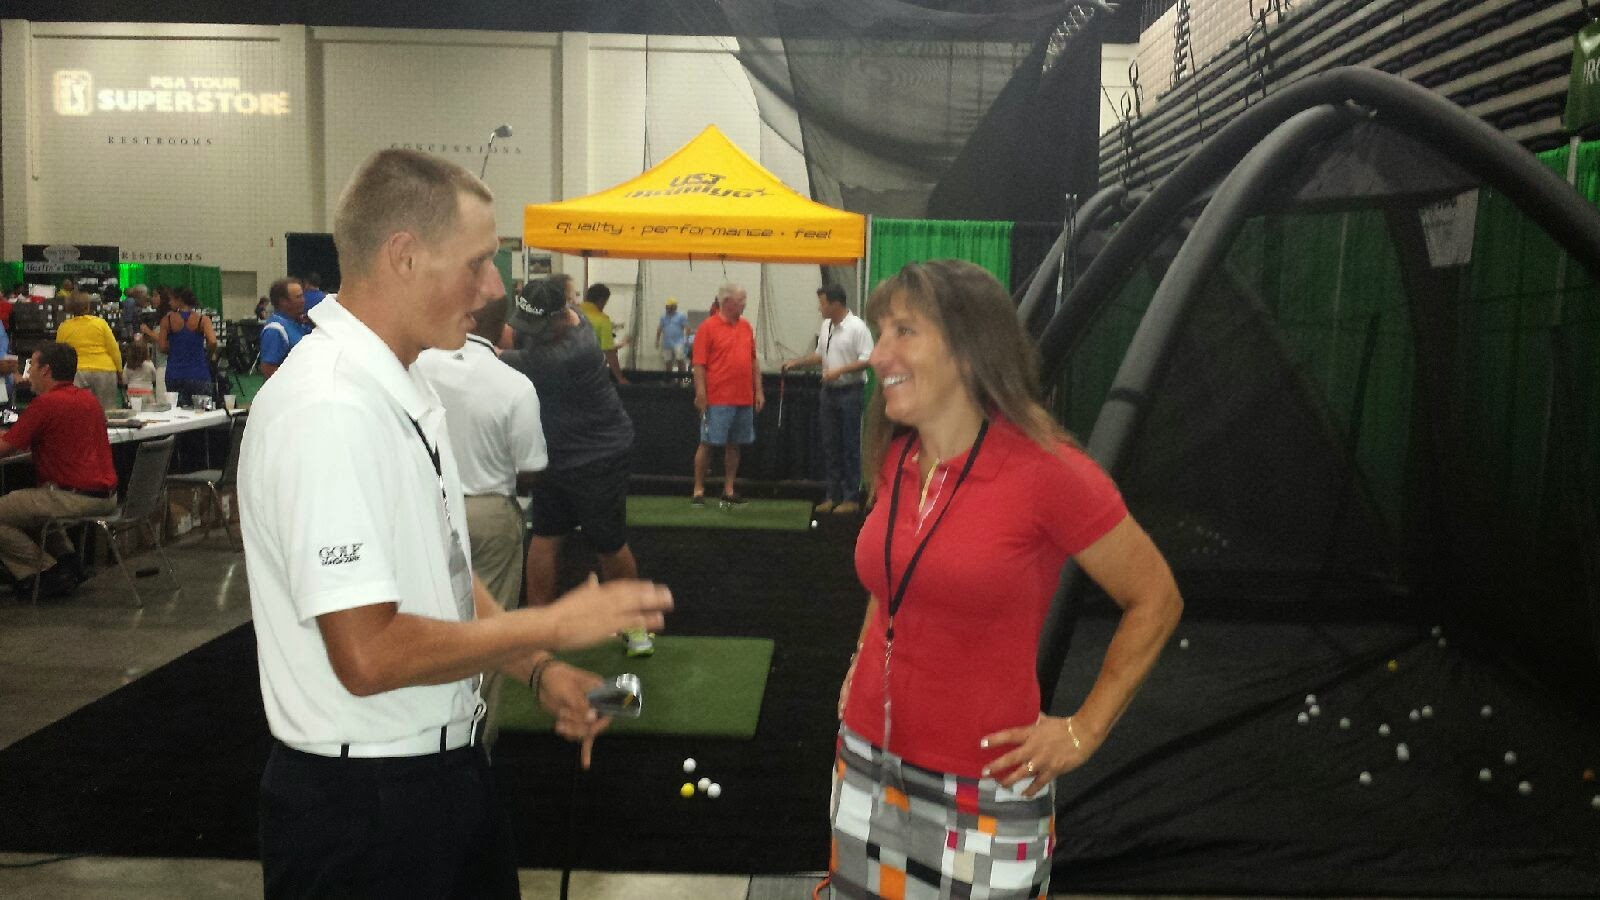 Stacy Solomon - Golf for Beginners at GolfTec booth